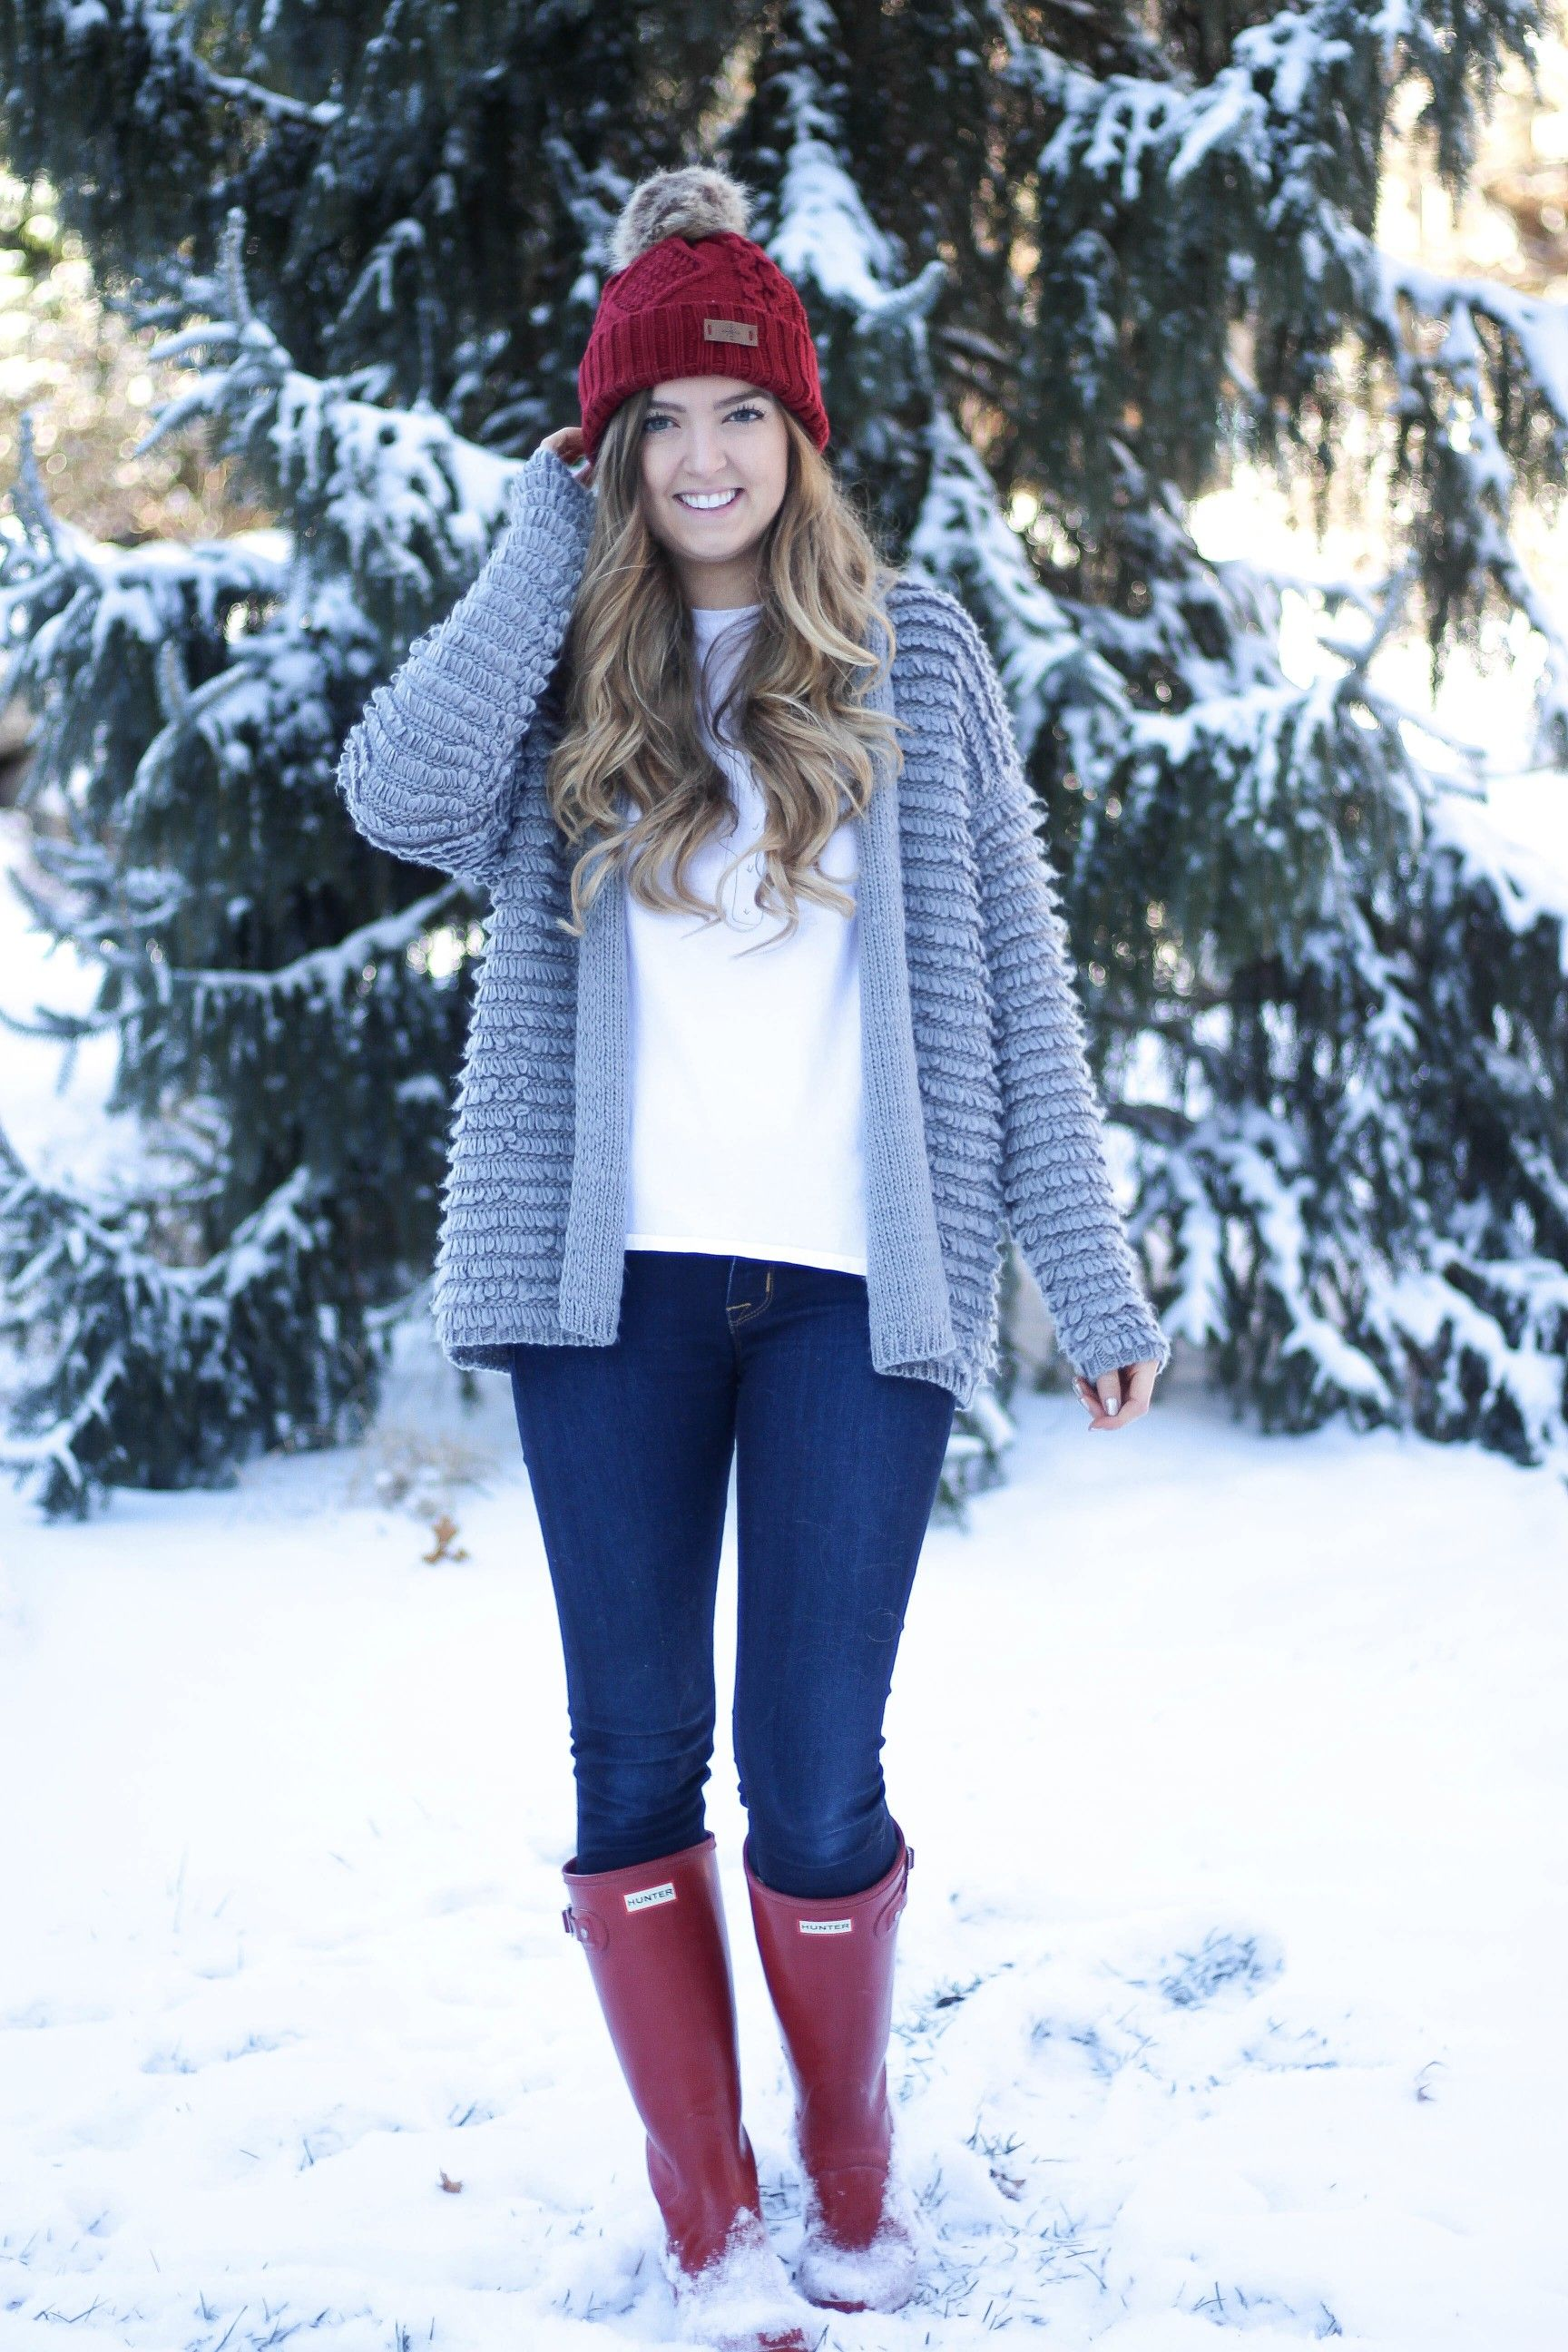 Cactus wearing a Santa hat t-shirt with an adorable textured cardigan. Paired with red hunter boots and a red beanie that is only $12! My favorite Christmas outfit, holiday outfit, and winter outfit! By Lauren Lindmark on Daily Dose of charm dailydoseofcharm.com